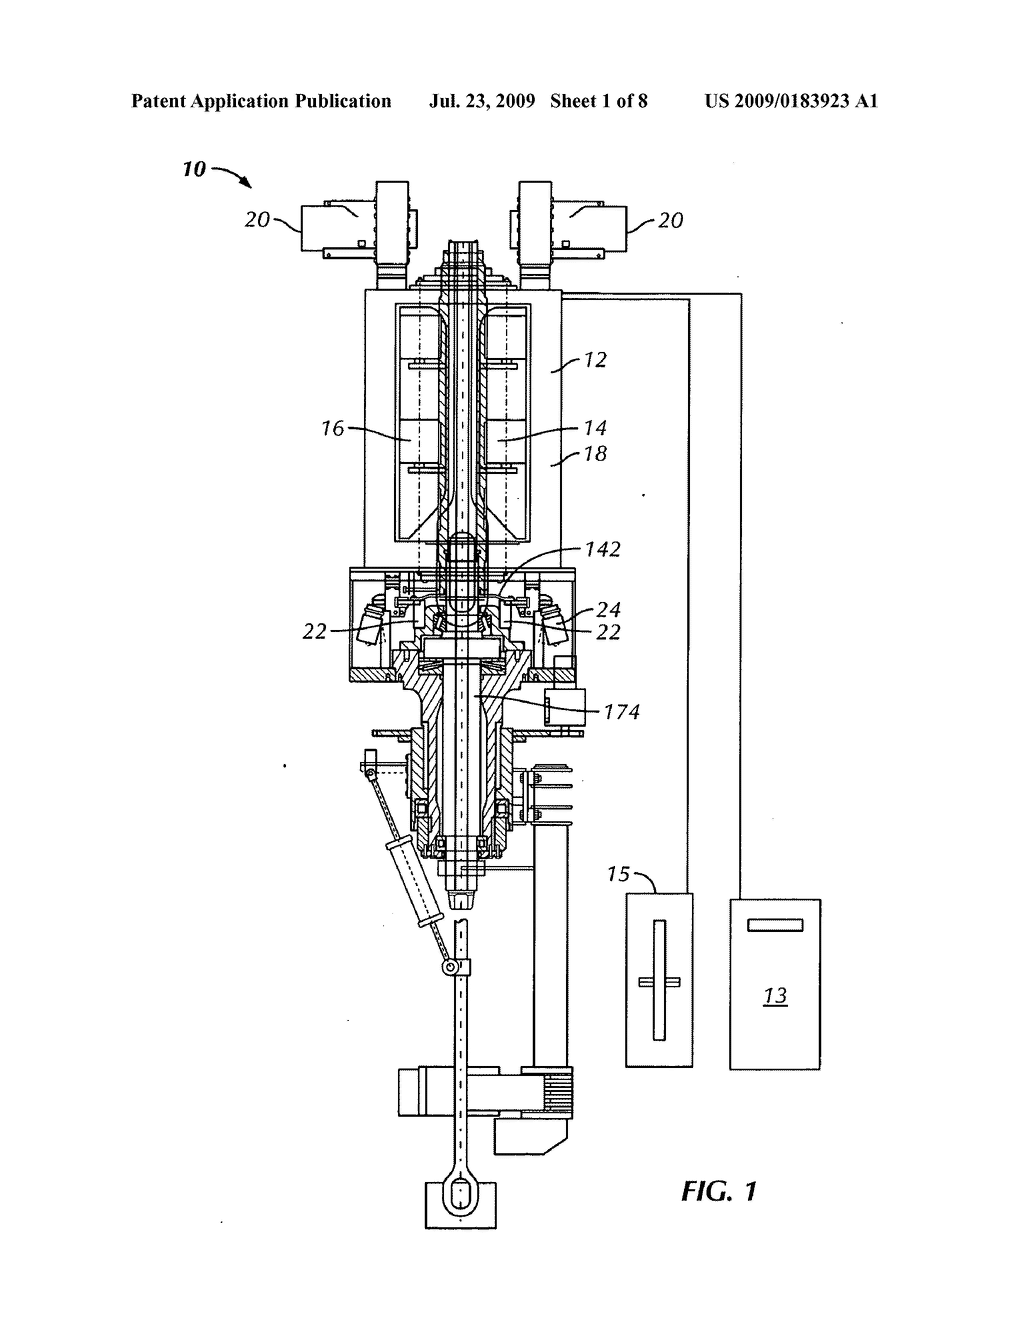 Top Drive Drilling System And Other Applications Using A Low Speed Ac Motor Circuit Direct Diagram Schematic Image 02